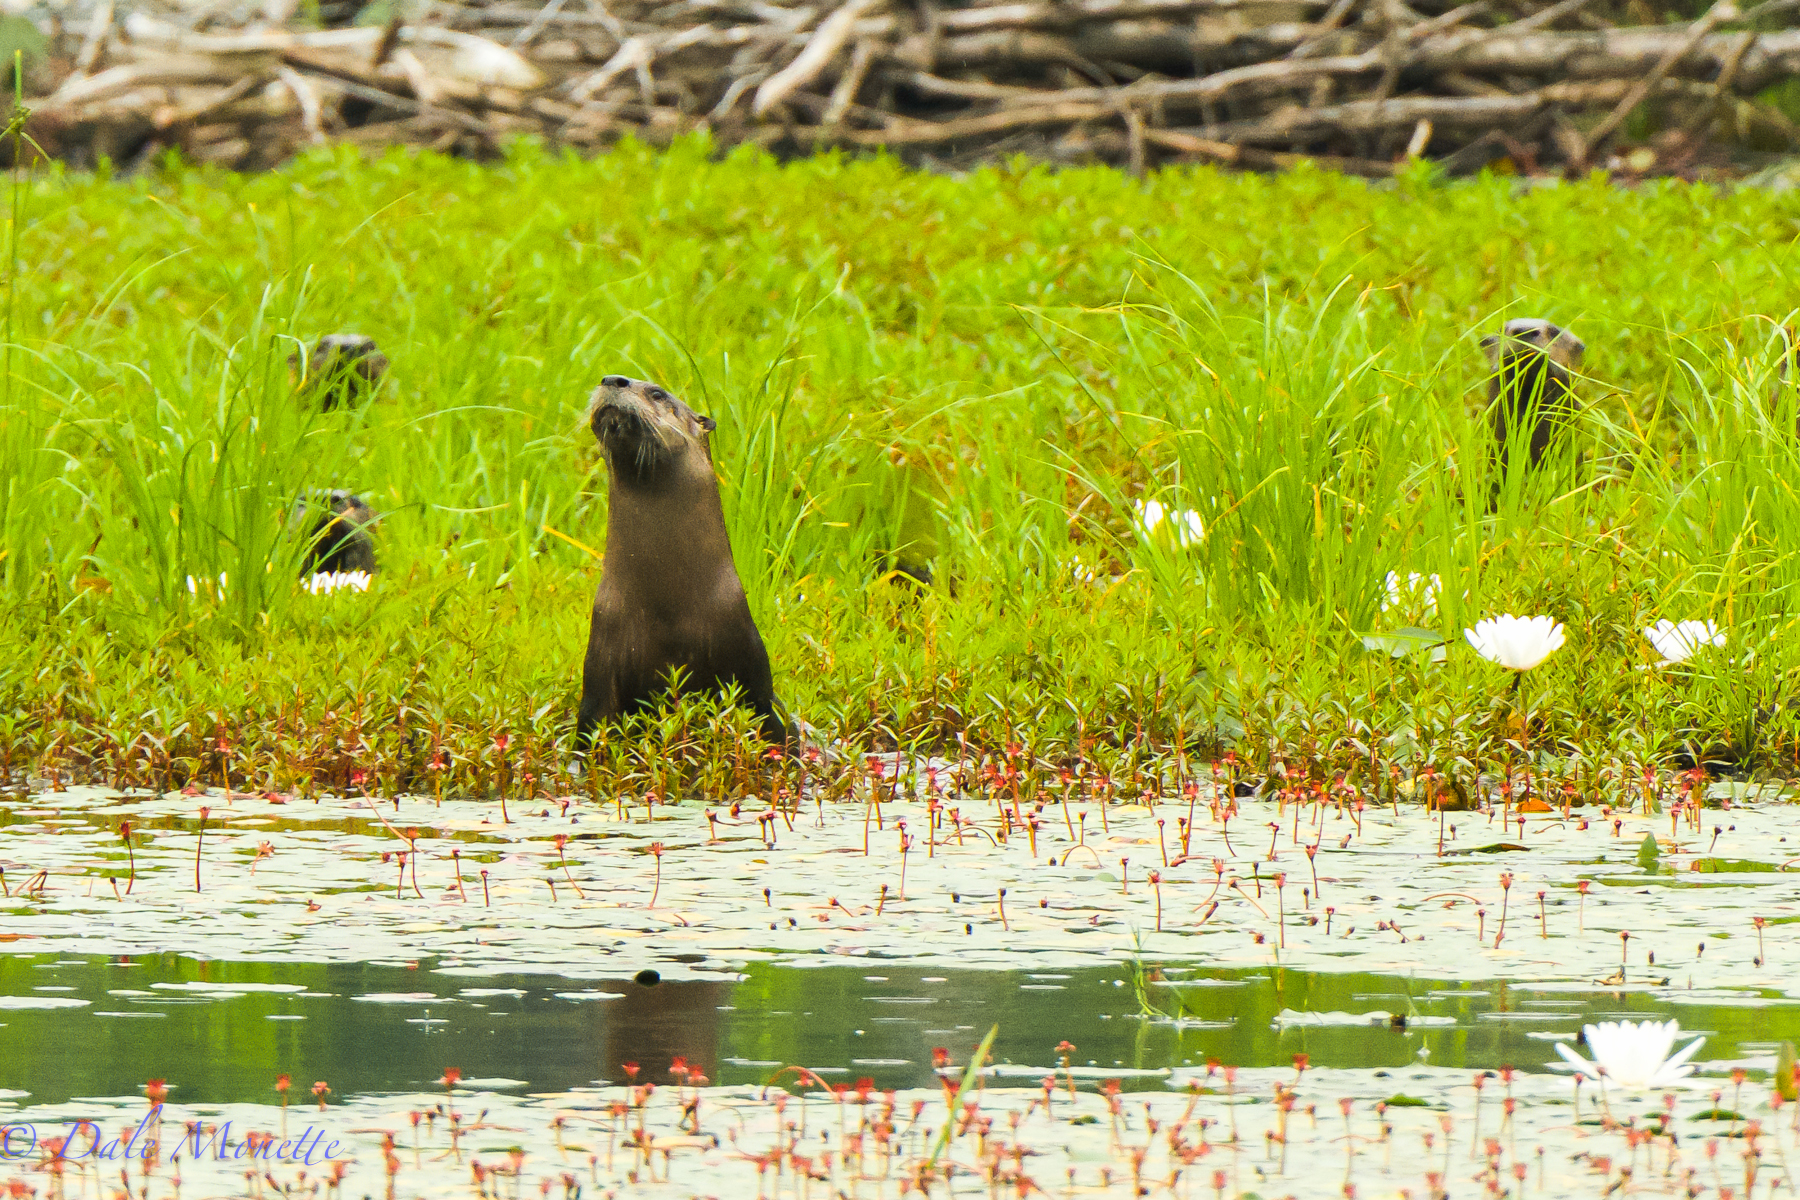 Here is the same adult otter as in the previous photo with three young ones peeking at me from behind in the tall swamp grass.